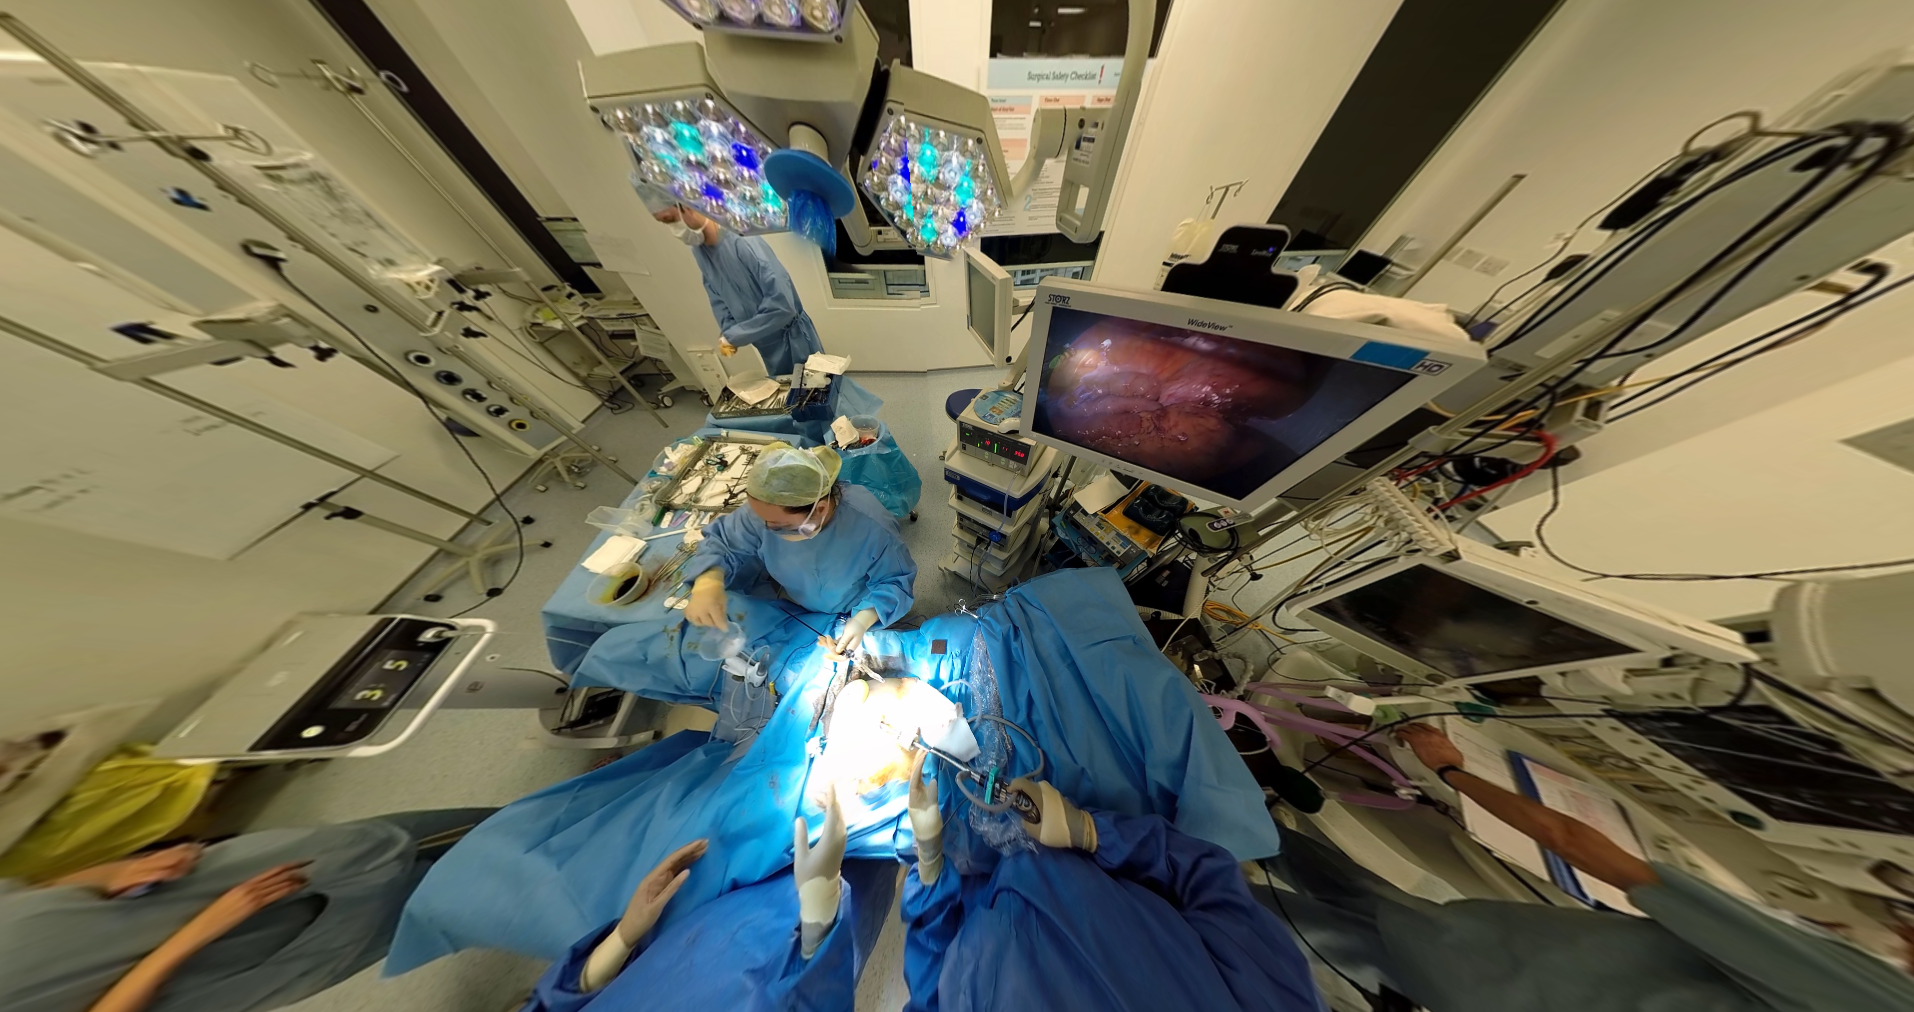 Surgical training in simulation